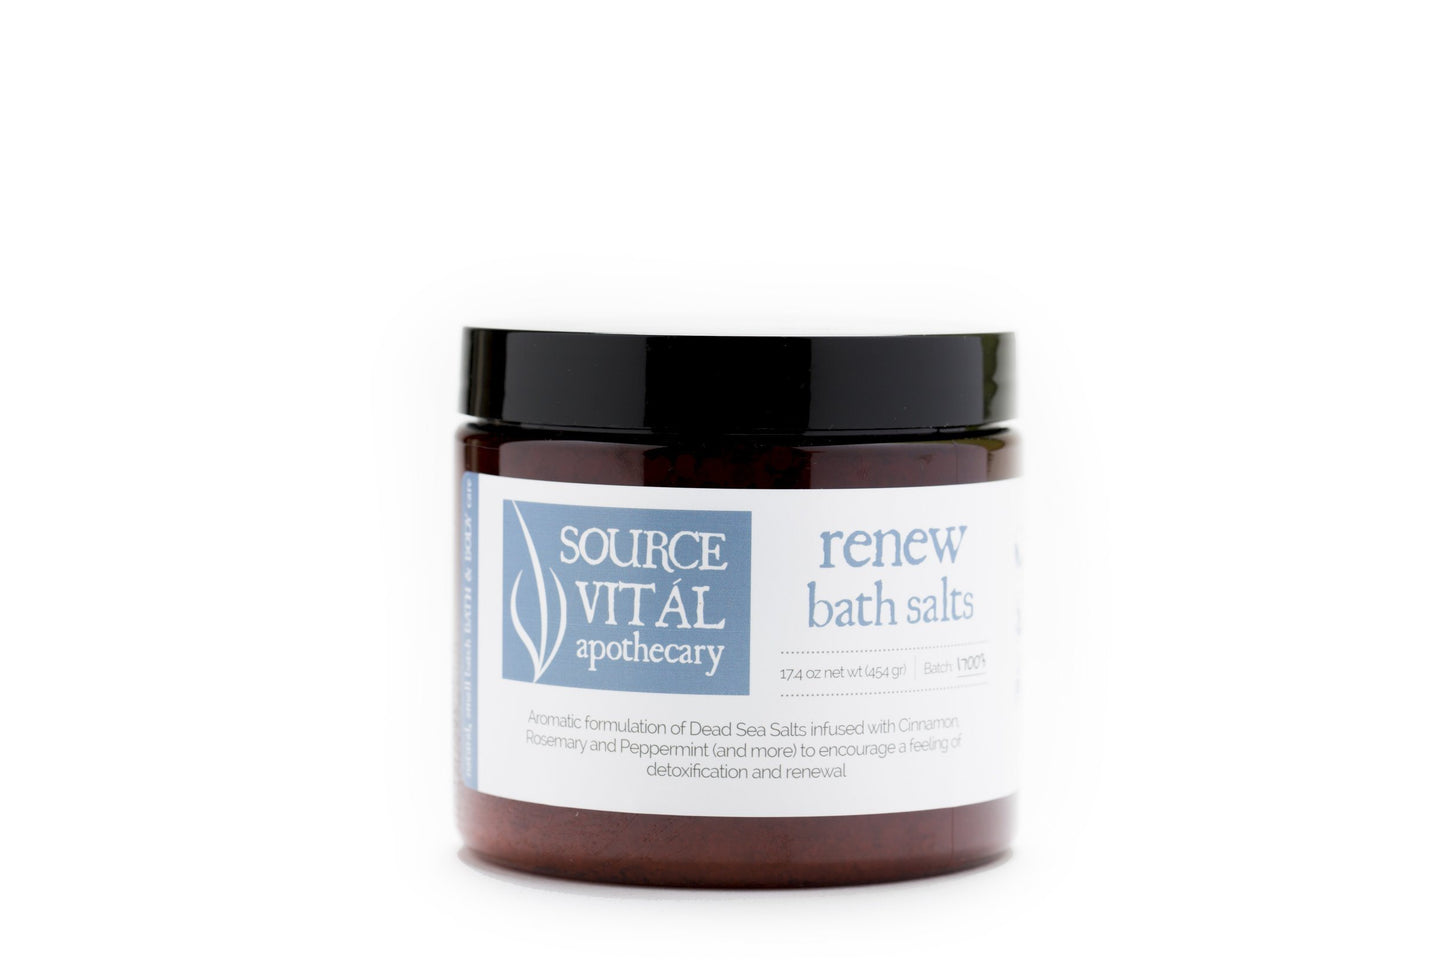 Source Vital Renew Bath Salts - Switch 2 Pure